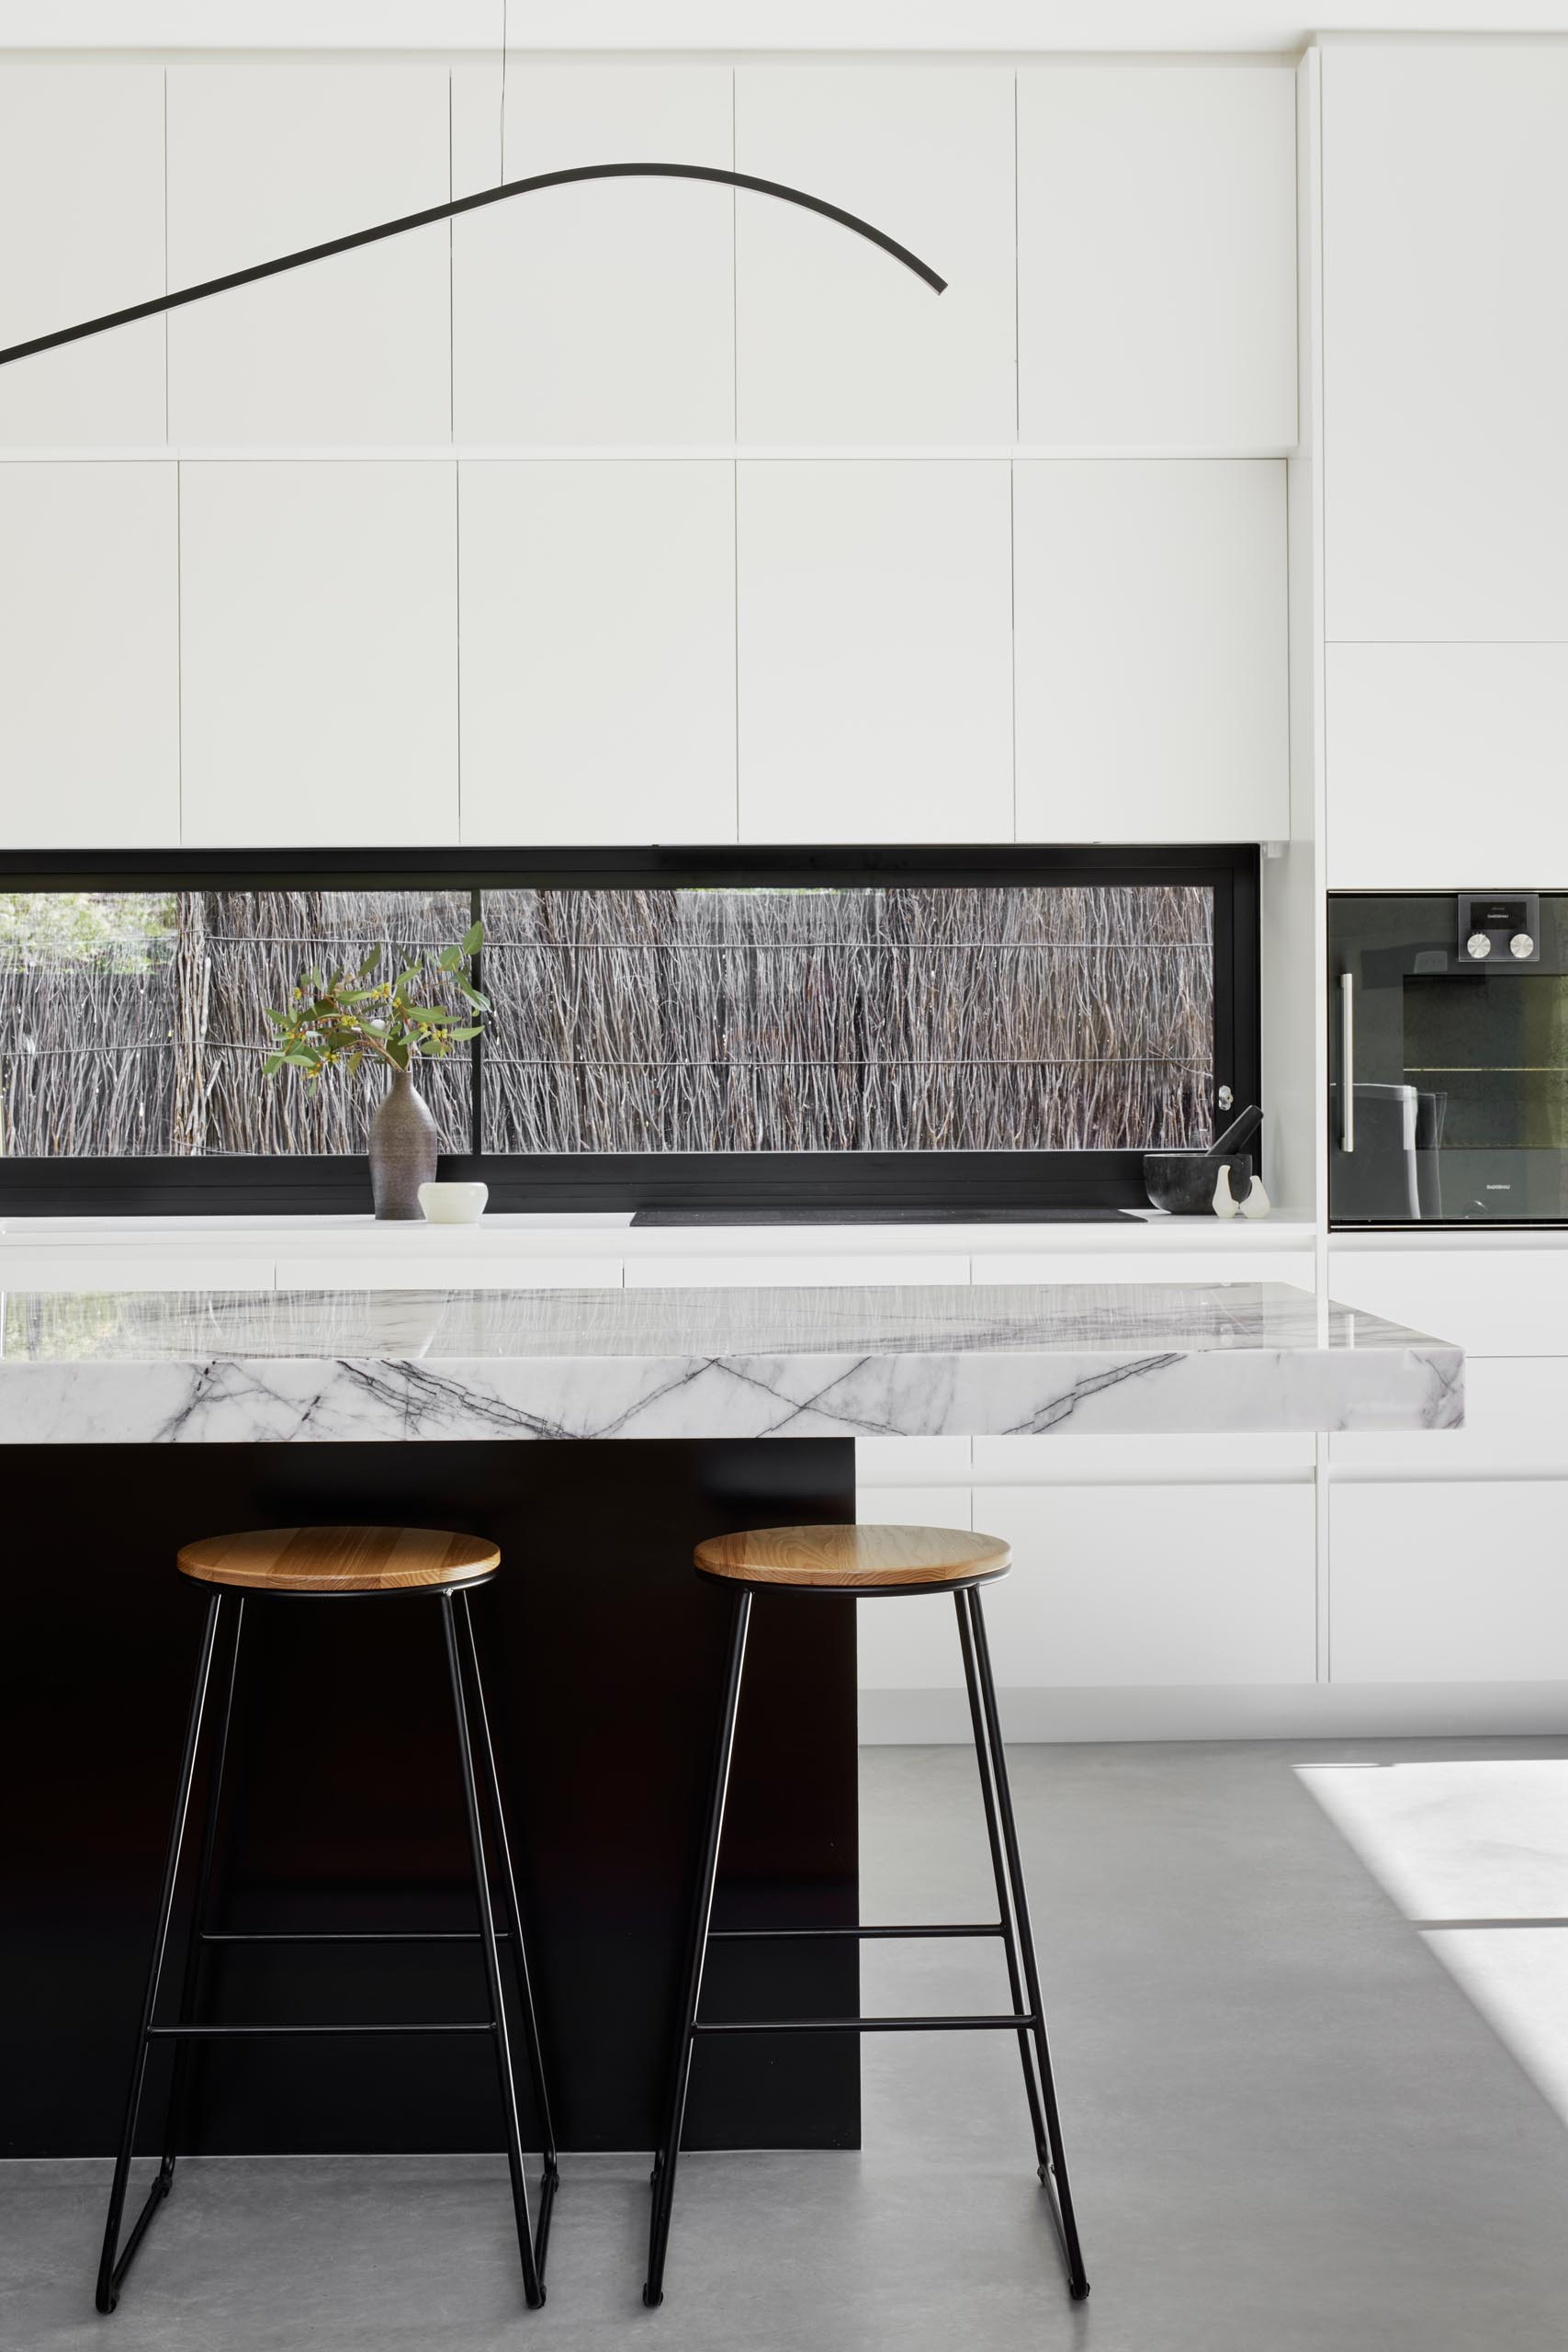 In this modern kitchen, minimalist white cabinets with an integrated fridge and freezer, contrast the built-in appliances, horizontal black window frame, and the black island base. The island has a thick marble countertop, while pure white countertops are featured along the wall.